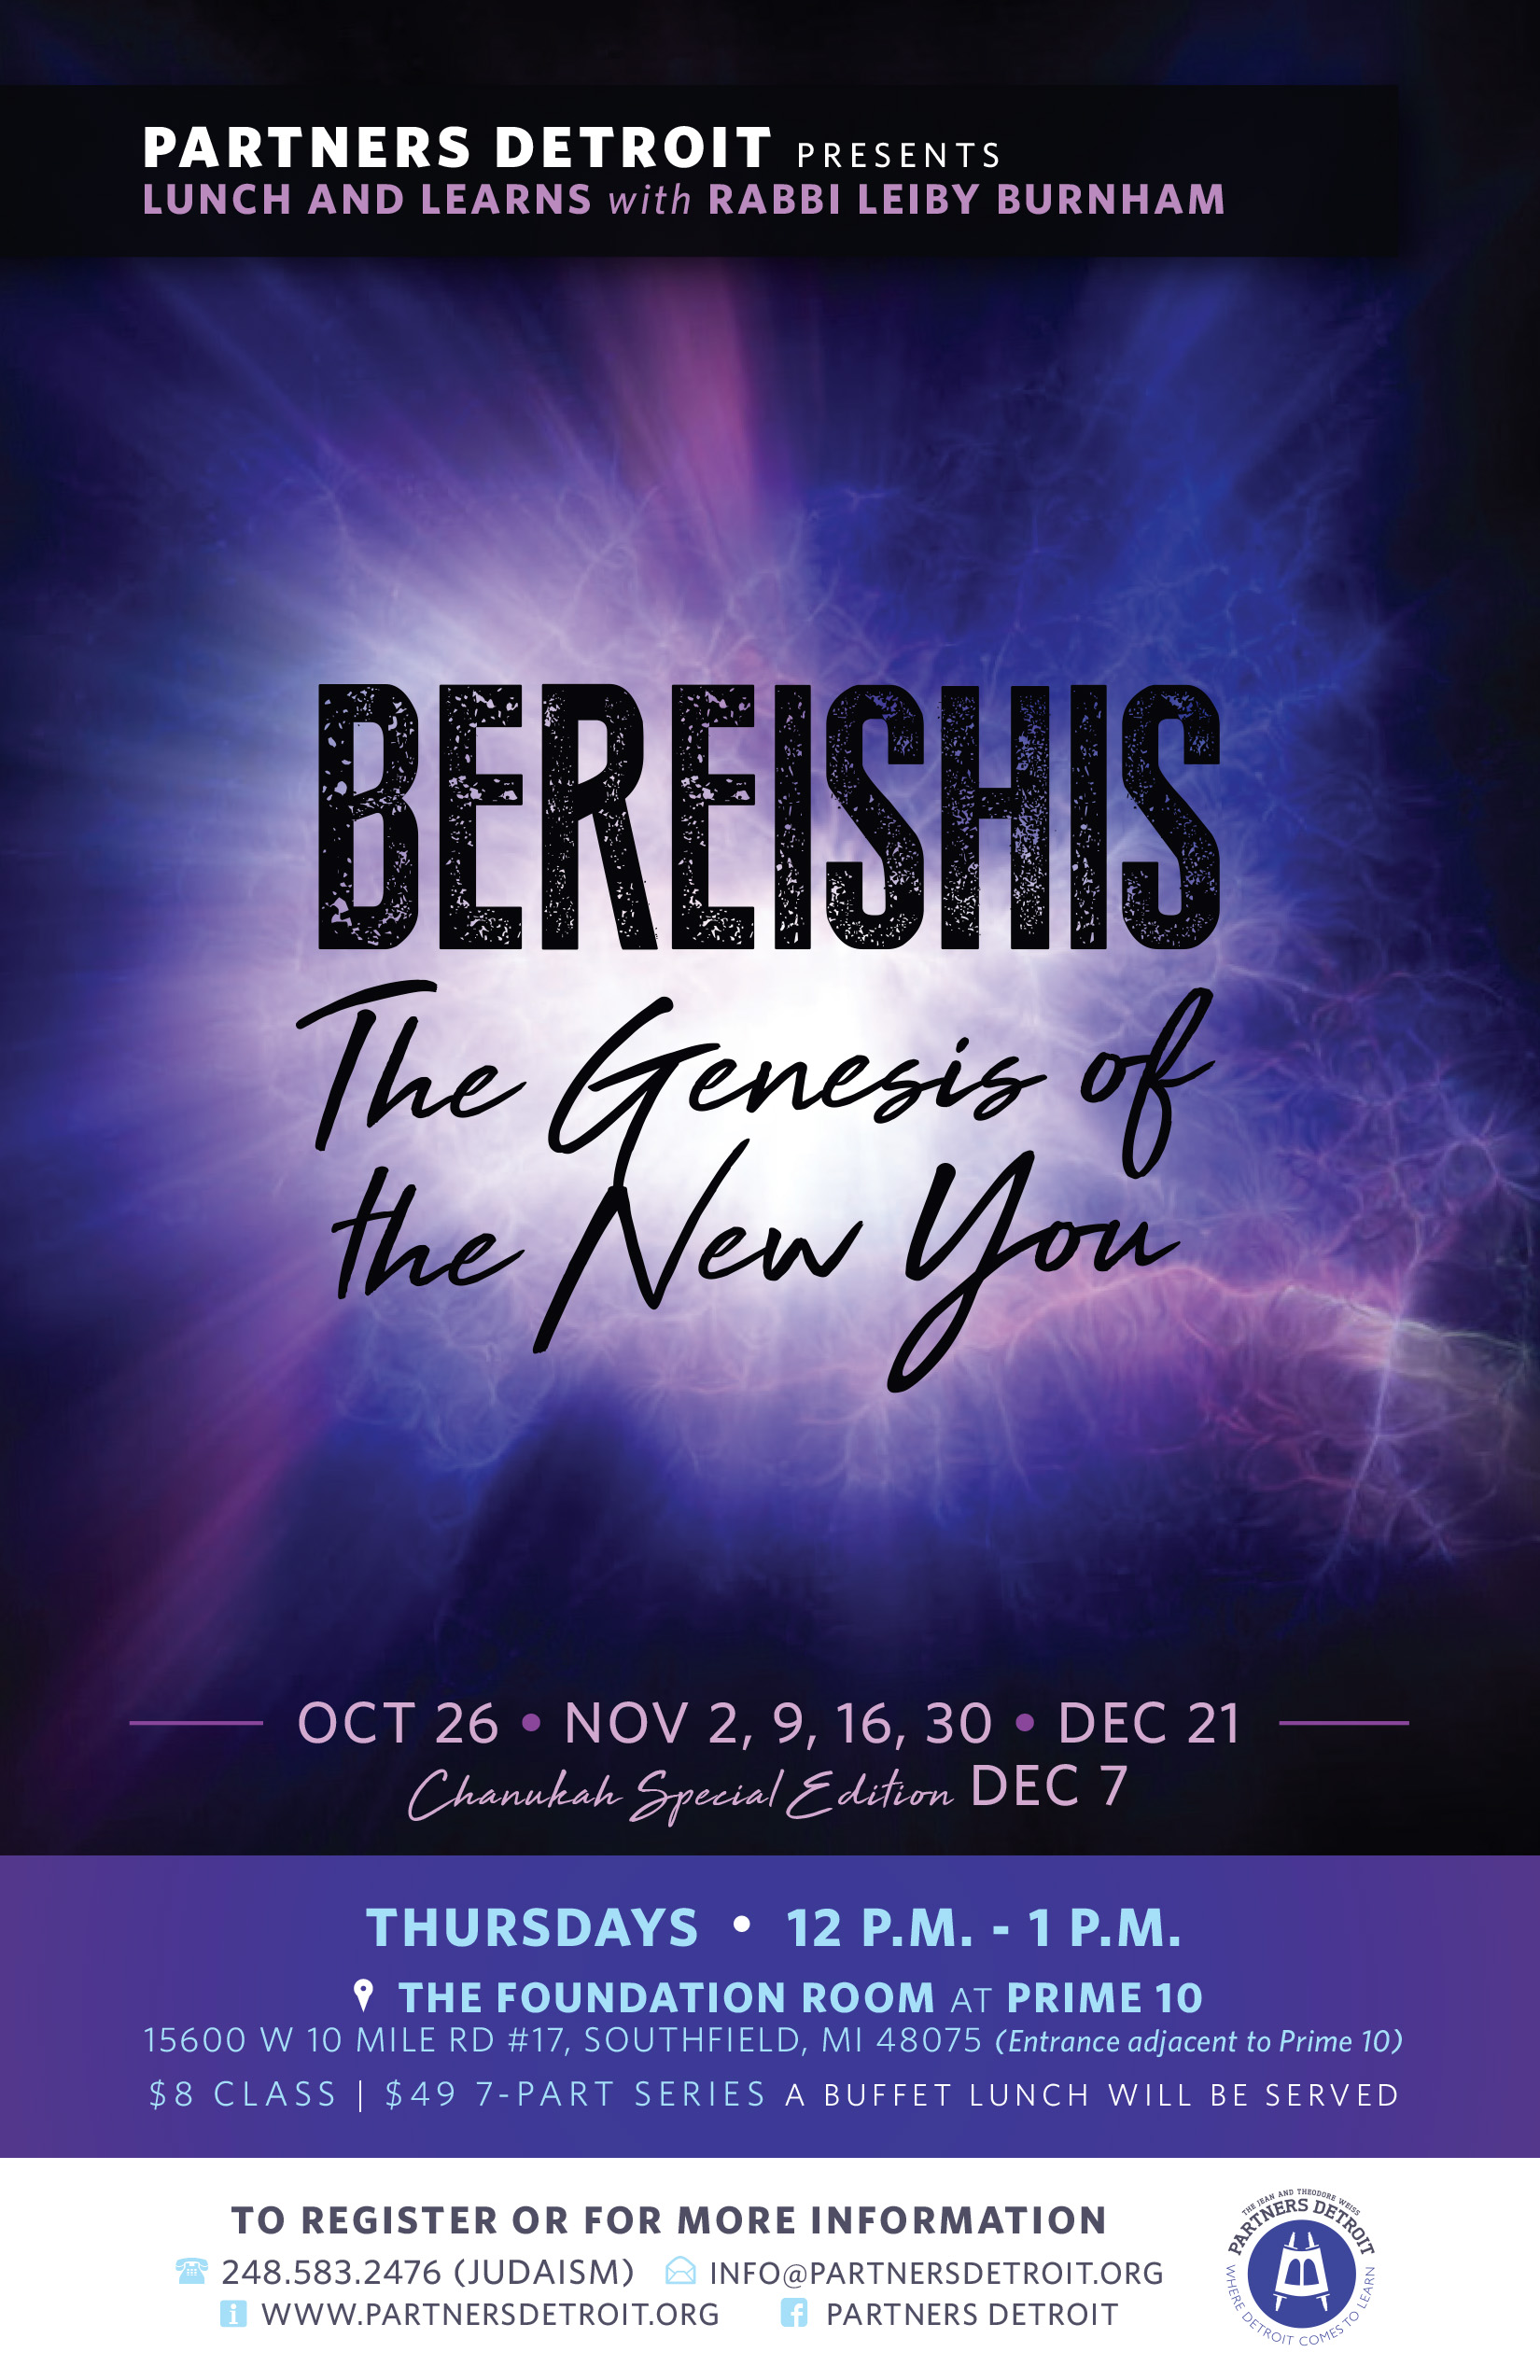 Bereishis: The Genesis of the New You Lunch 'n Learn